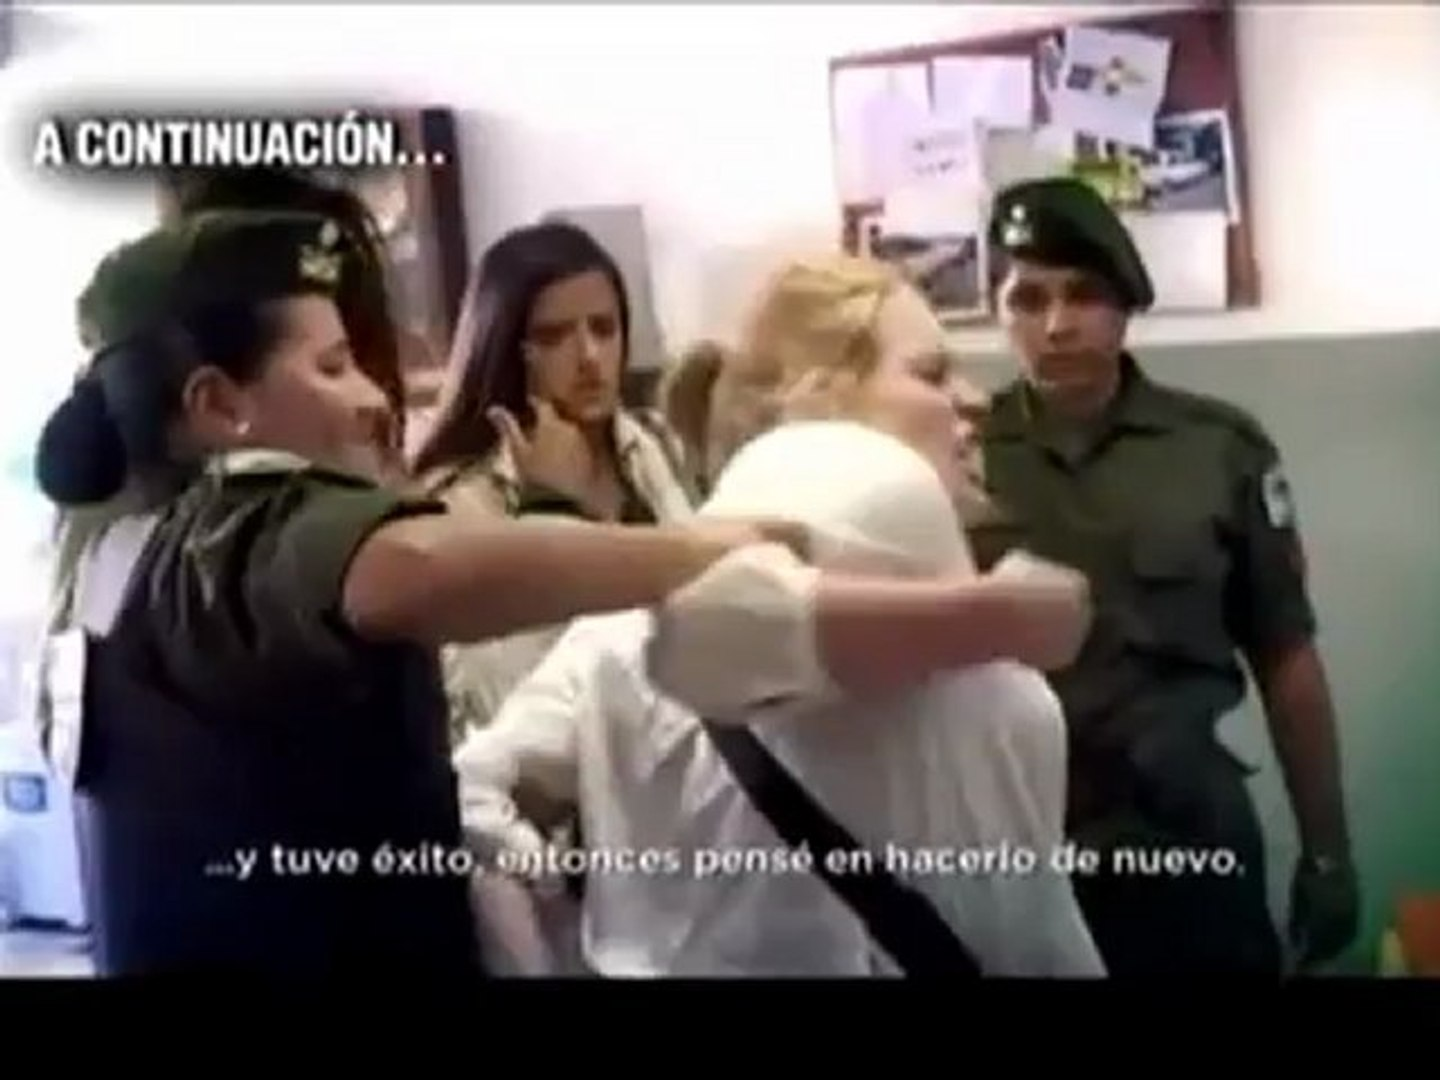 [Discovery] Mujeres Traficantes 1